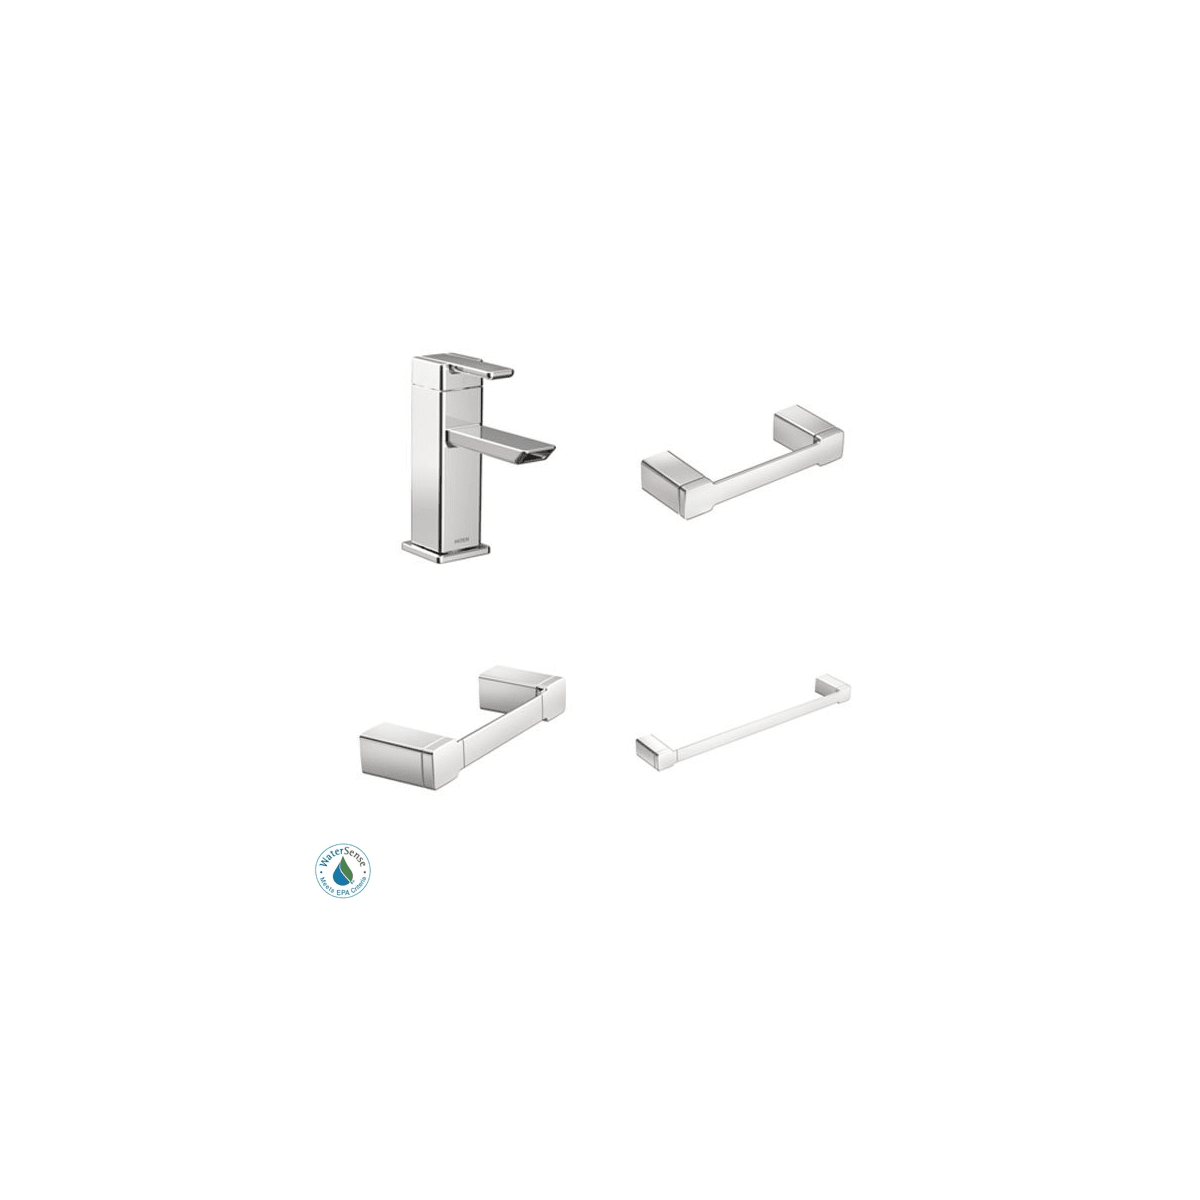 Moen 90 Degree Faucet and Accessory Bundle 1